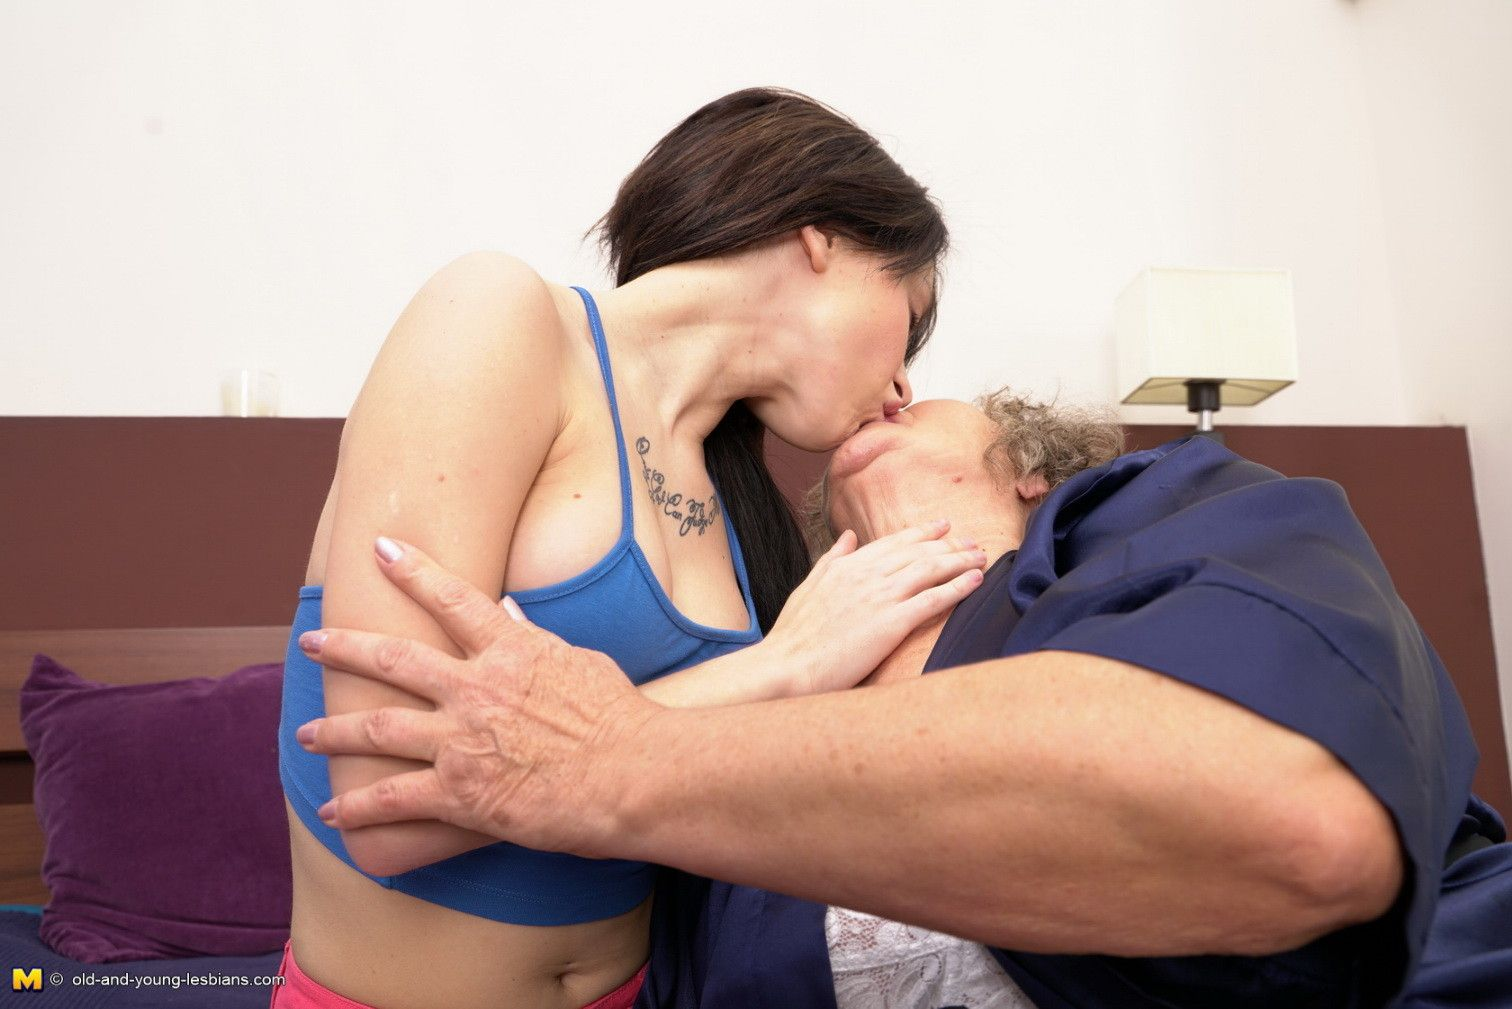 Horny old and young lesbian couple playing together